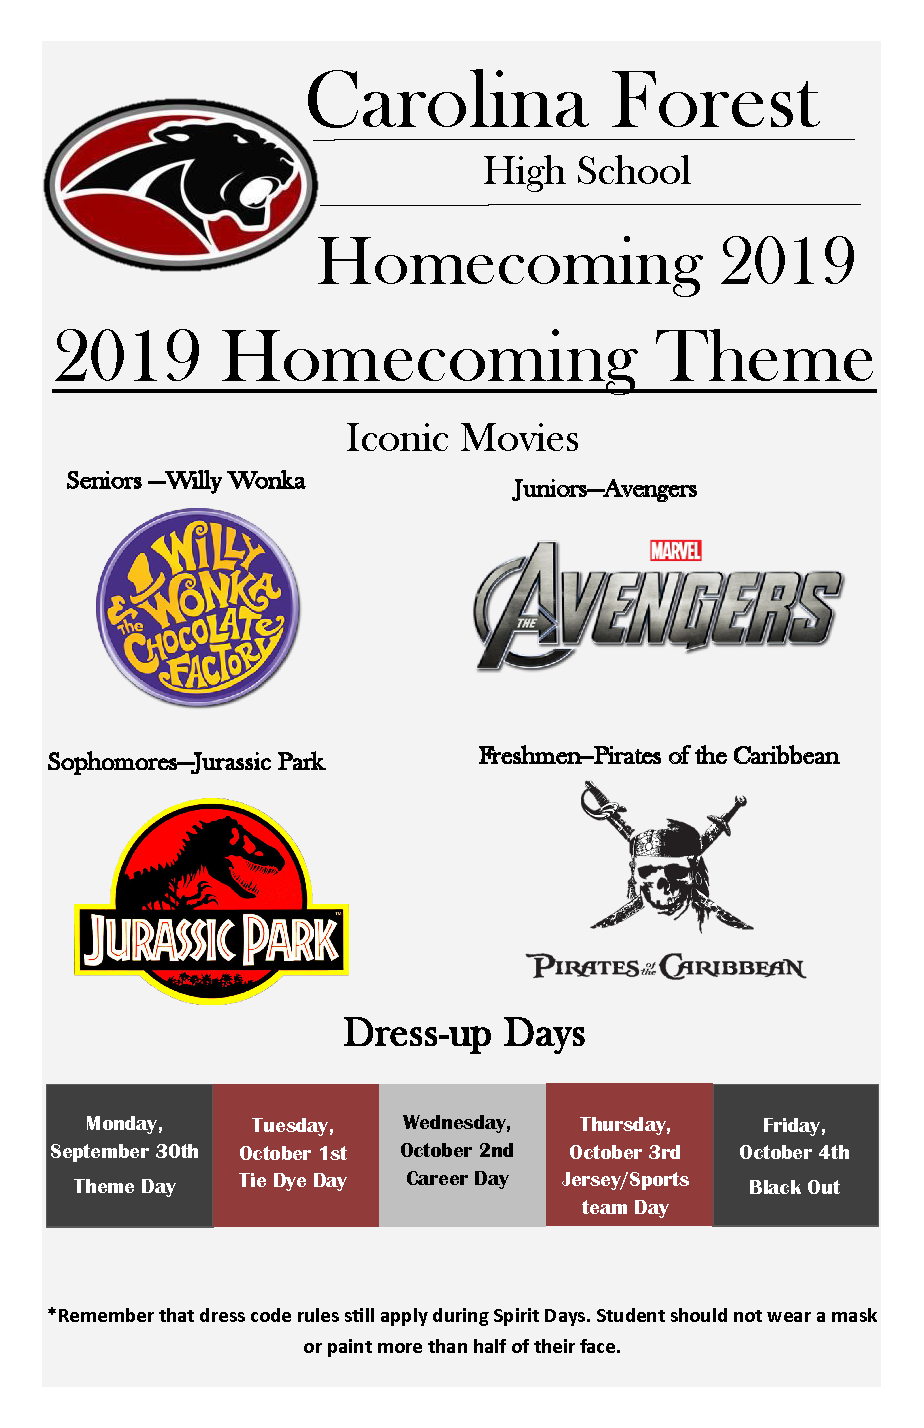 Homecoming Week Theme 2019